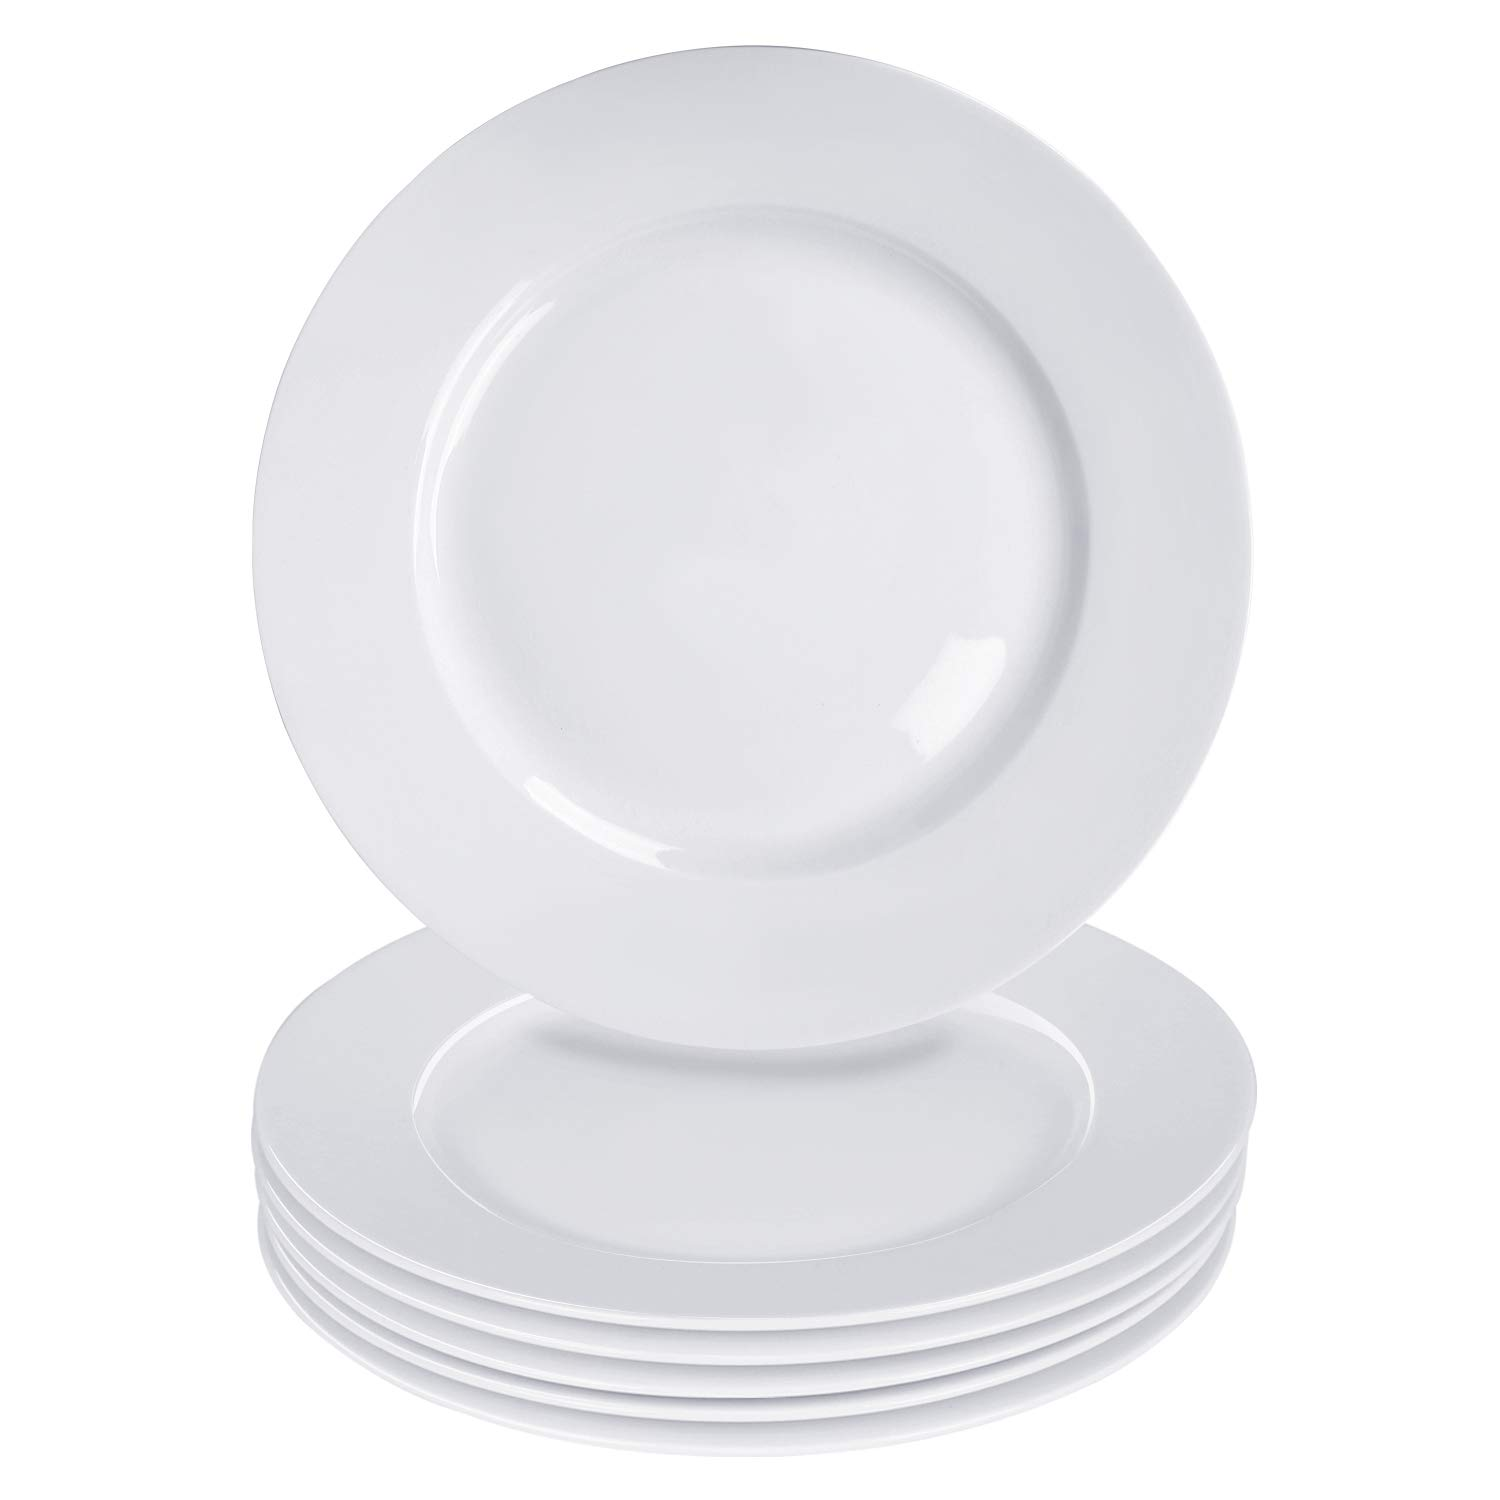 Alt-Gt Porcelain Lunch Appetizer Plates for Bread/Butter/Dessert,Round White Wedding and Party Serving Platters Ceramic Dinnerware Dishwasher Microwave Dishes for Everyday Use, Set of 6 (7.5 inch)